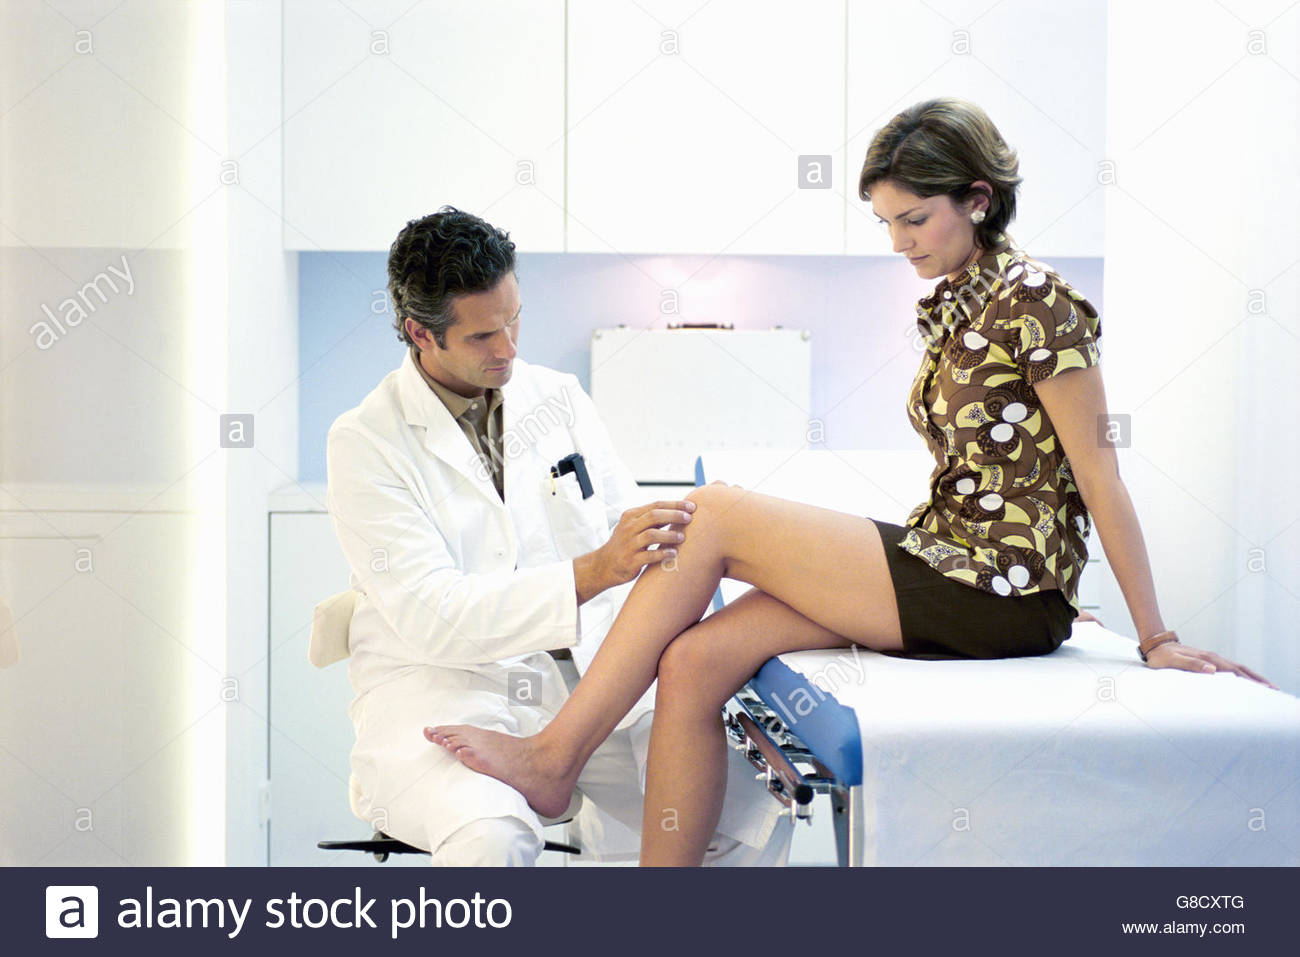 Portrait of a male doctor checking a young woman's reflexes - Stock Image